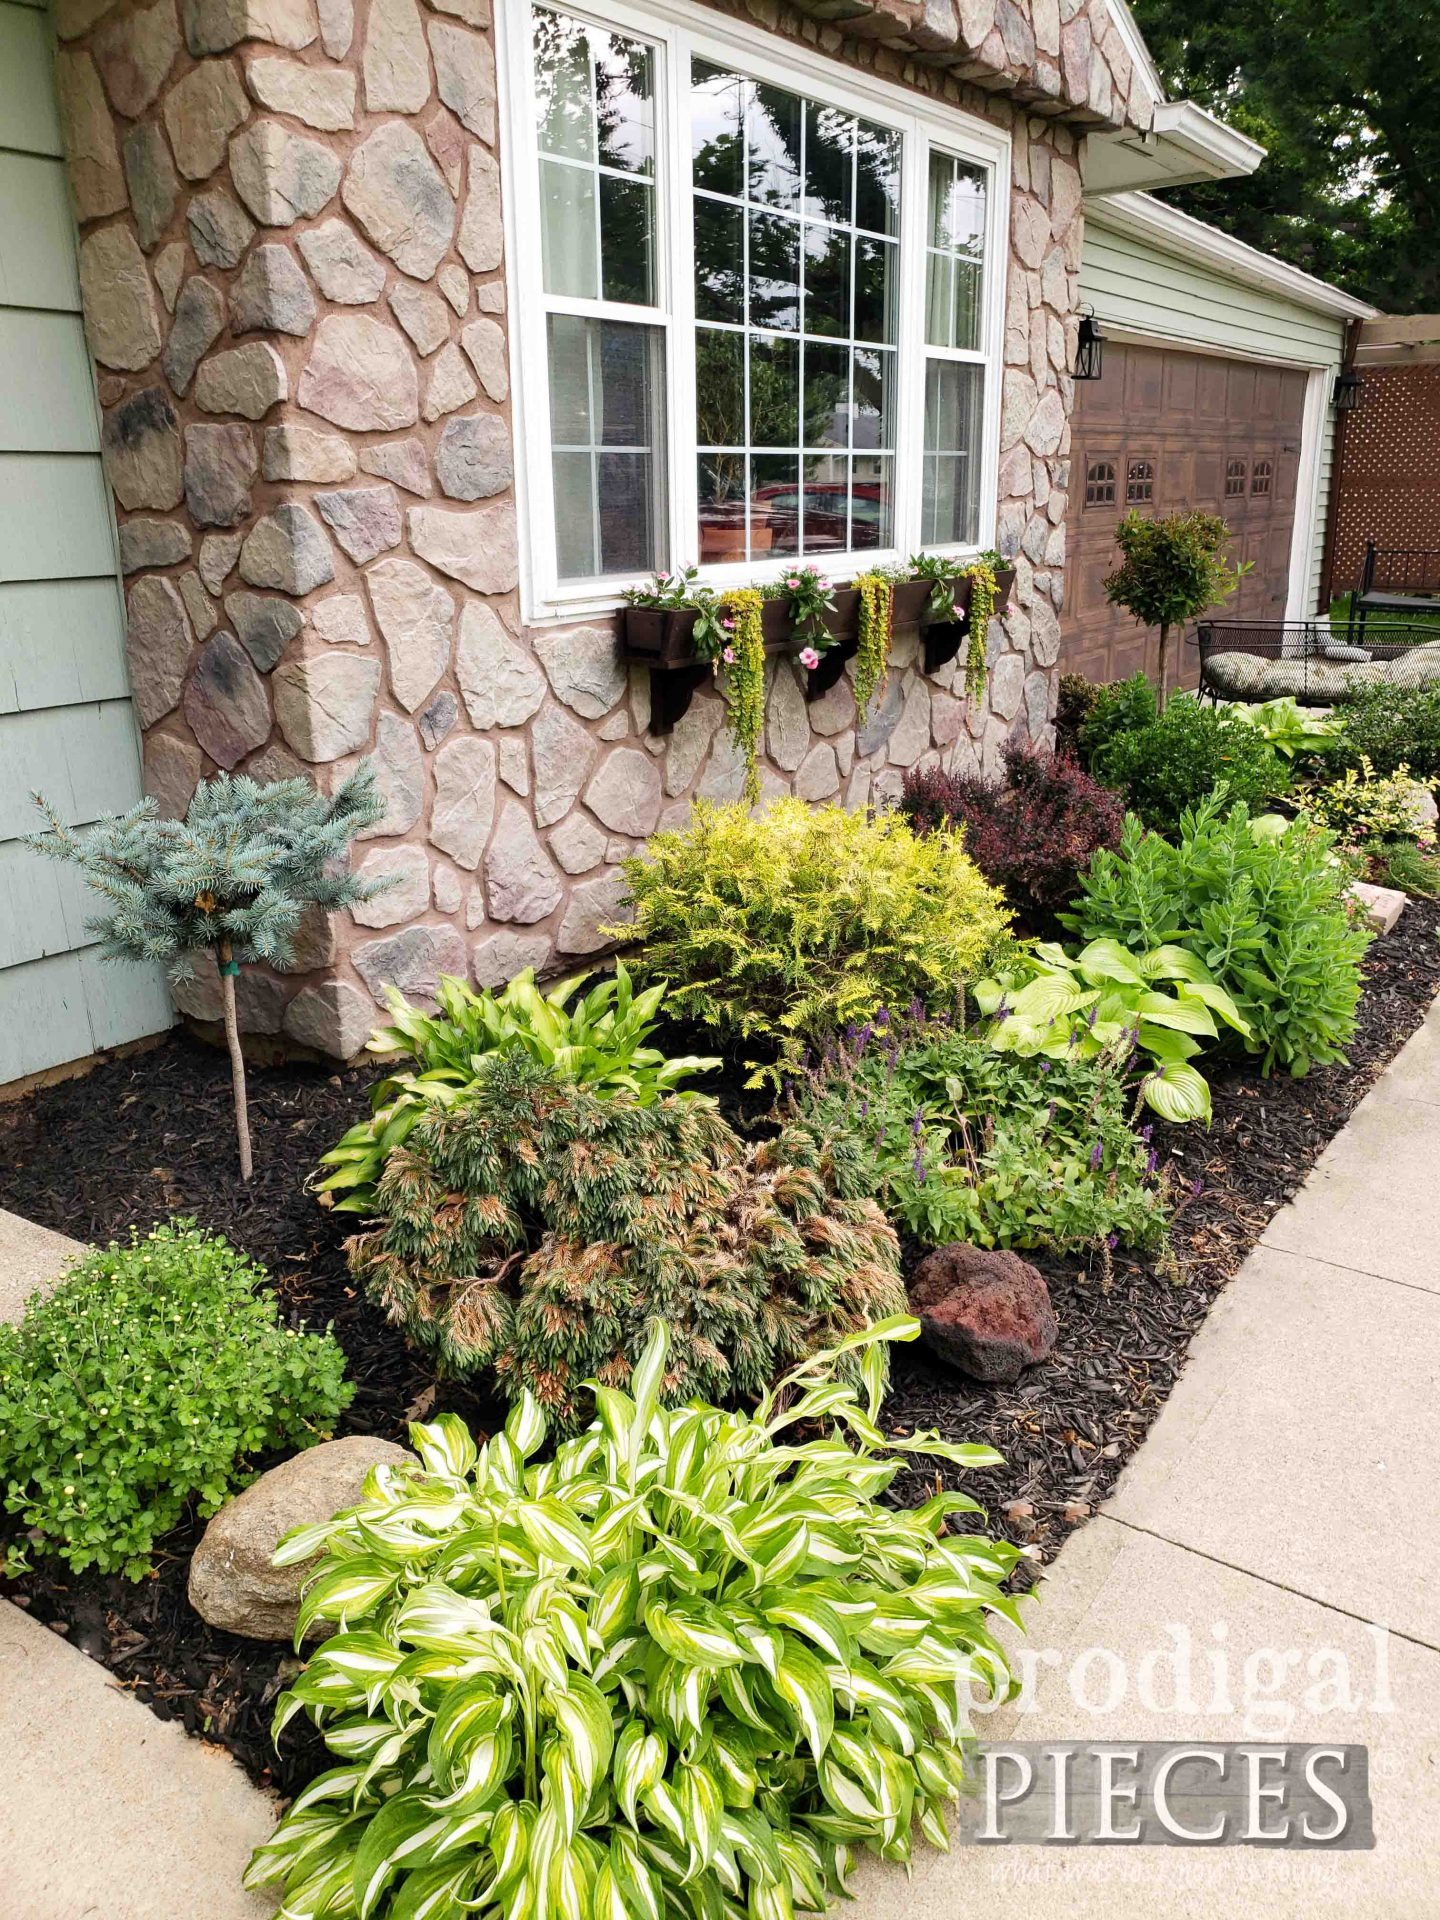 Front Landscaping of Home by Prodigal Pieces | prodigalpieces.com #prodigalpieces #garden #diy #home #homedecor